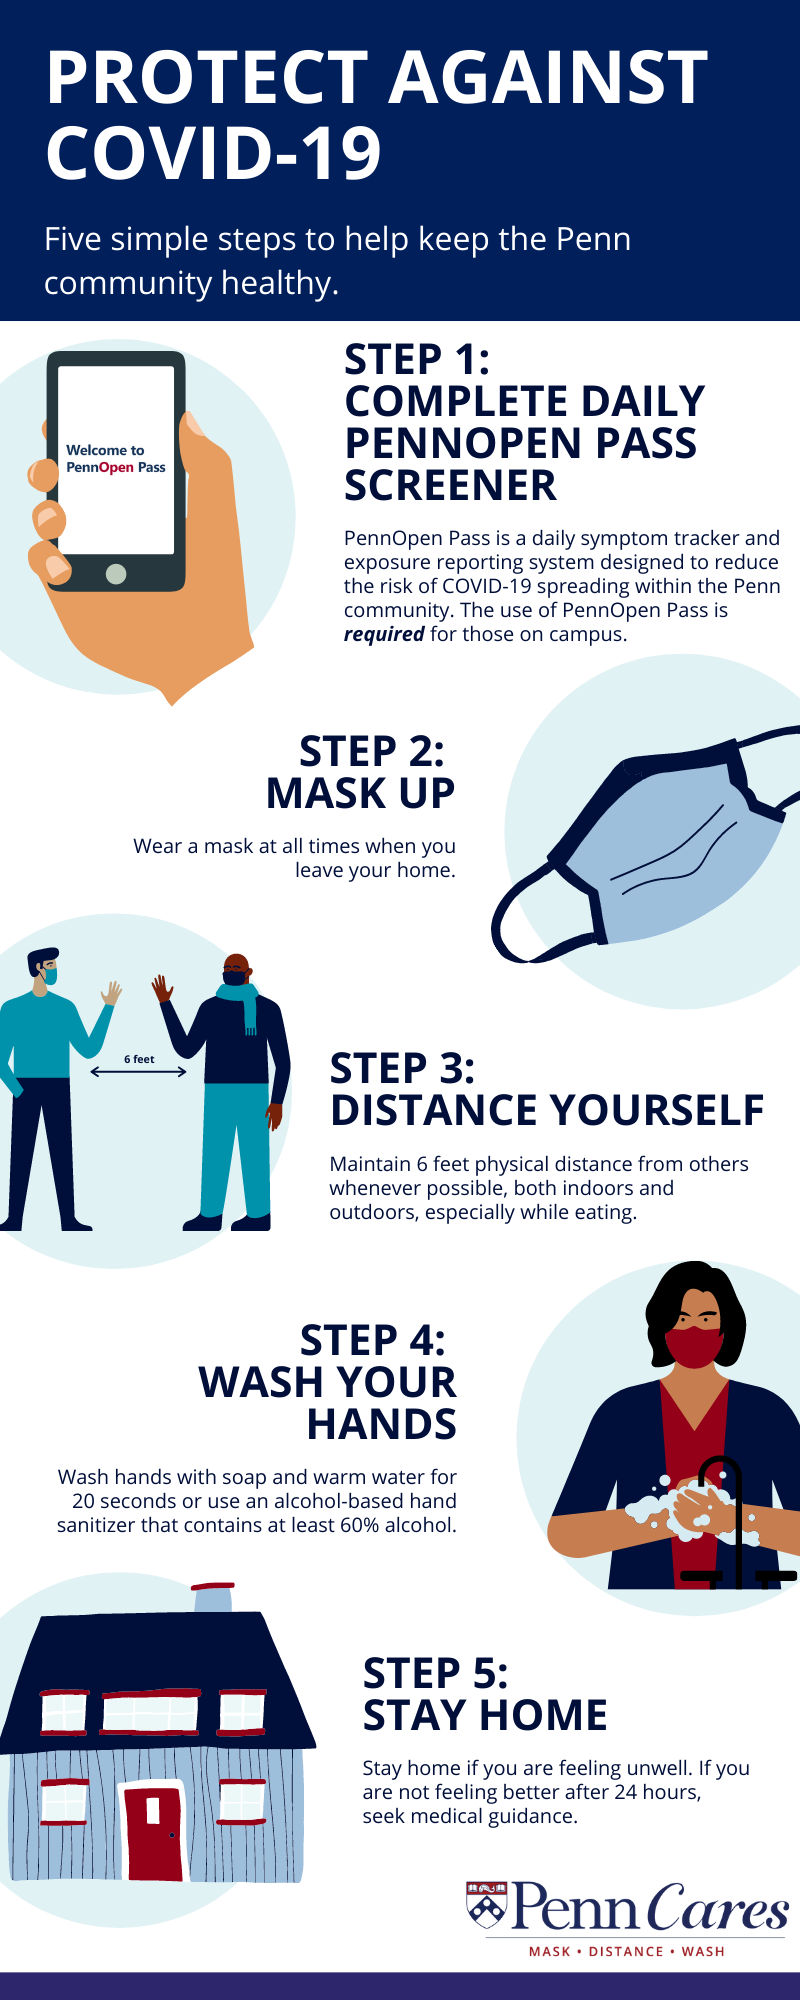 Steps to reduce the spread of COVID-19 on Penn's Campus, including completing daily PennOpen Pass, wearing a mask, remaining physically distant, washing hands, and staying home when sick.